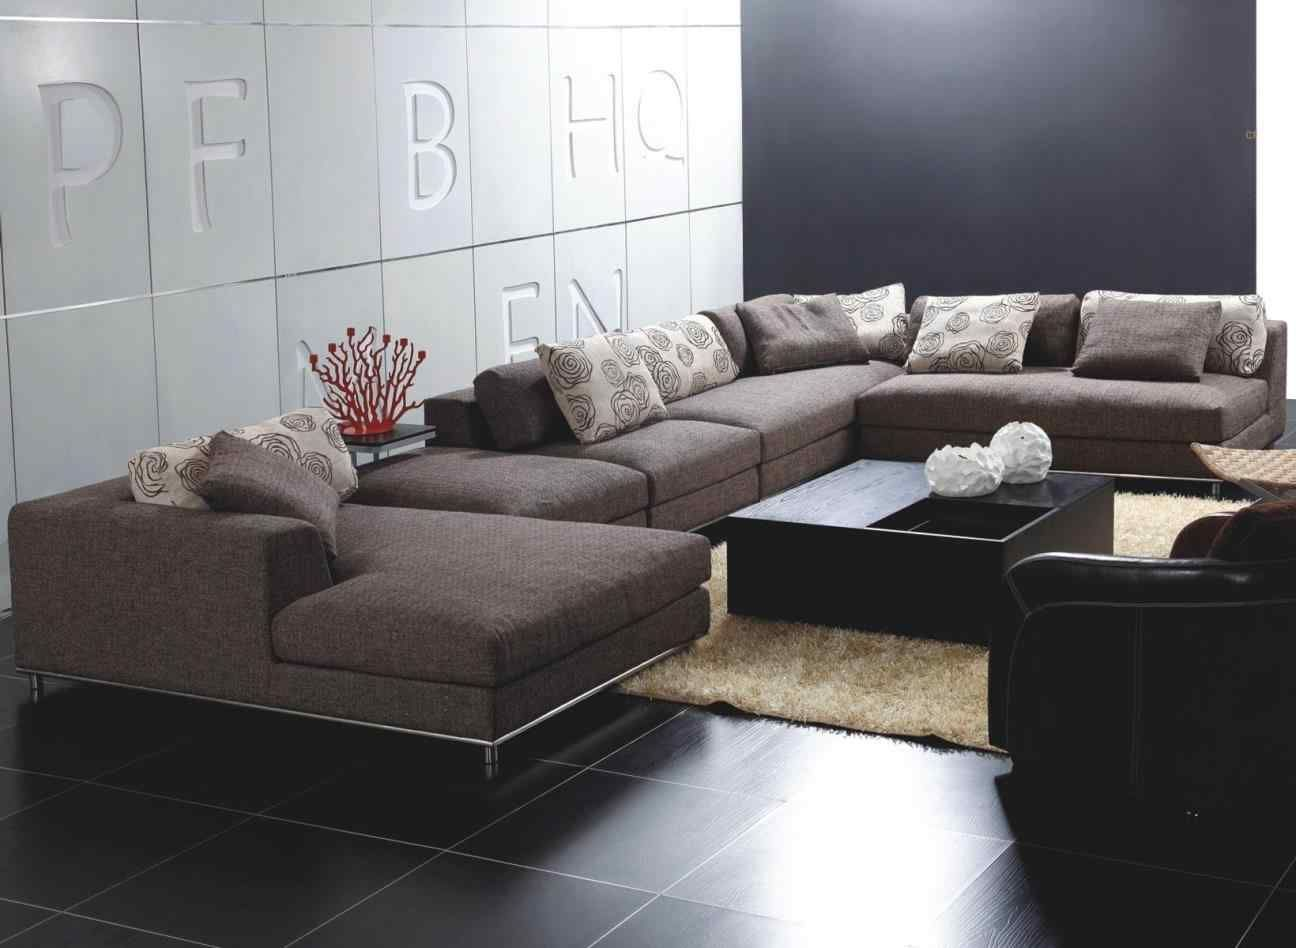 Sofas Under 1000 Pertaining To Popular Leather Reclining Sofa With Chaise For Your Popular Modern Sectional Sofas Under 1000 Leather Reclining Sofa Casas